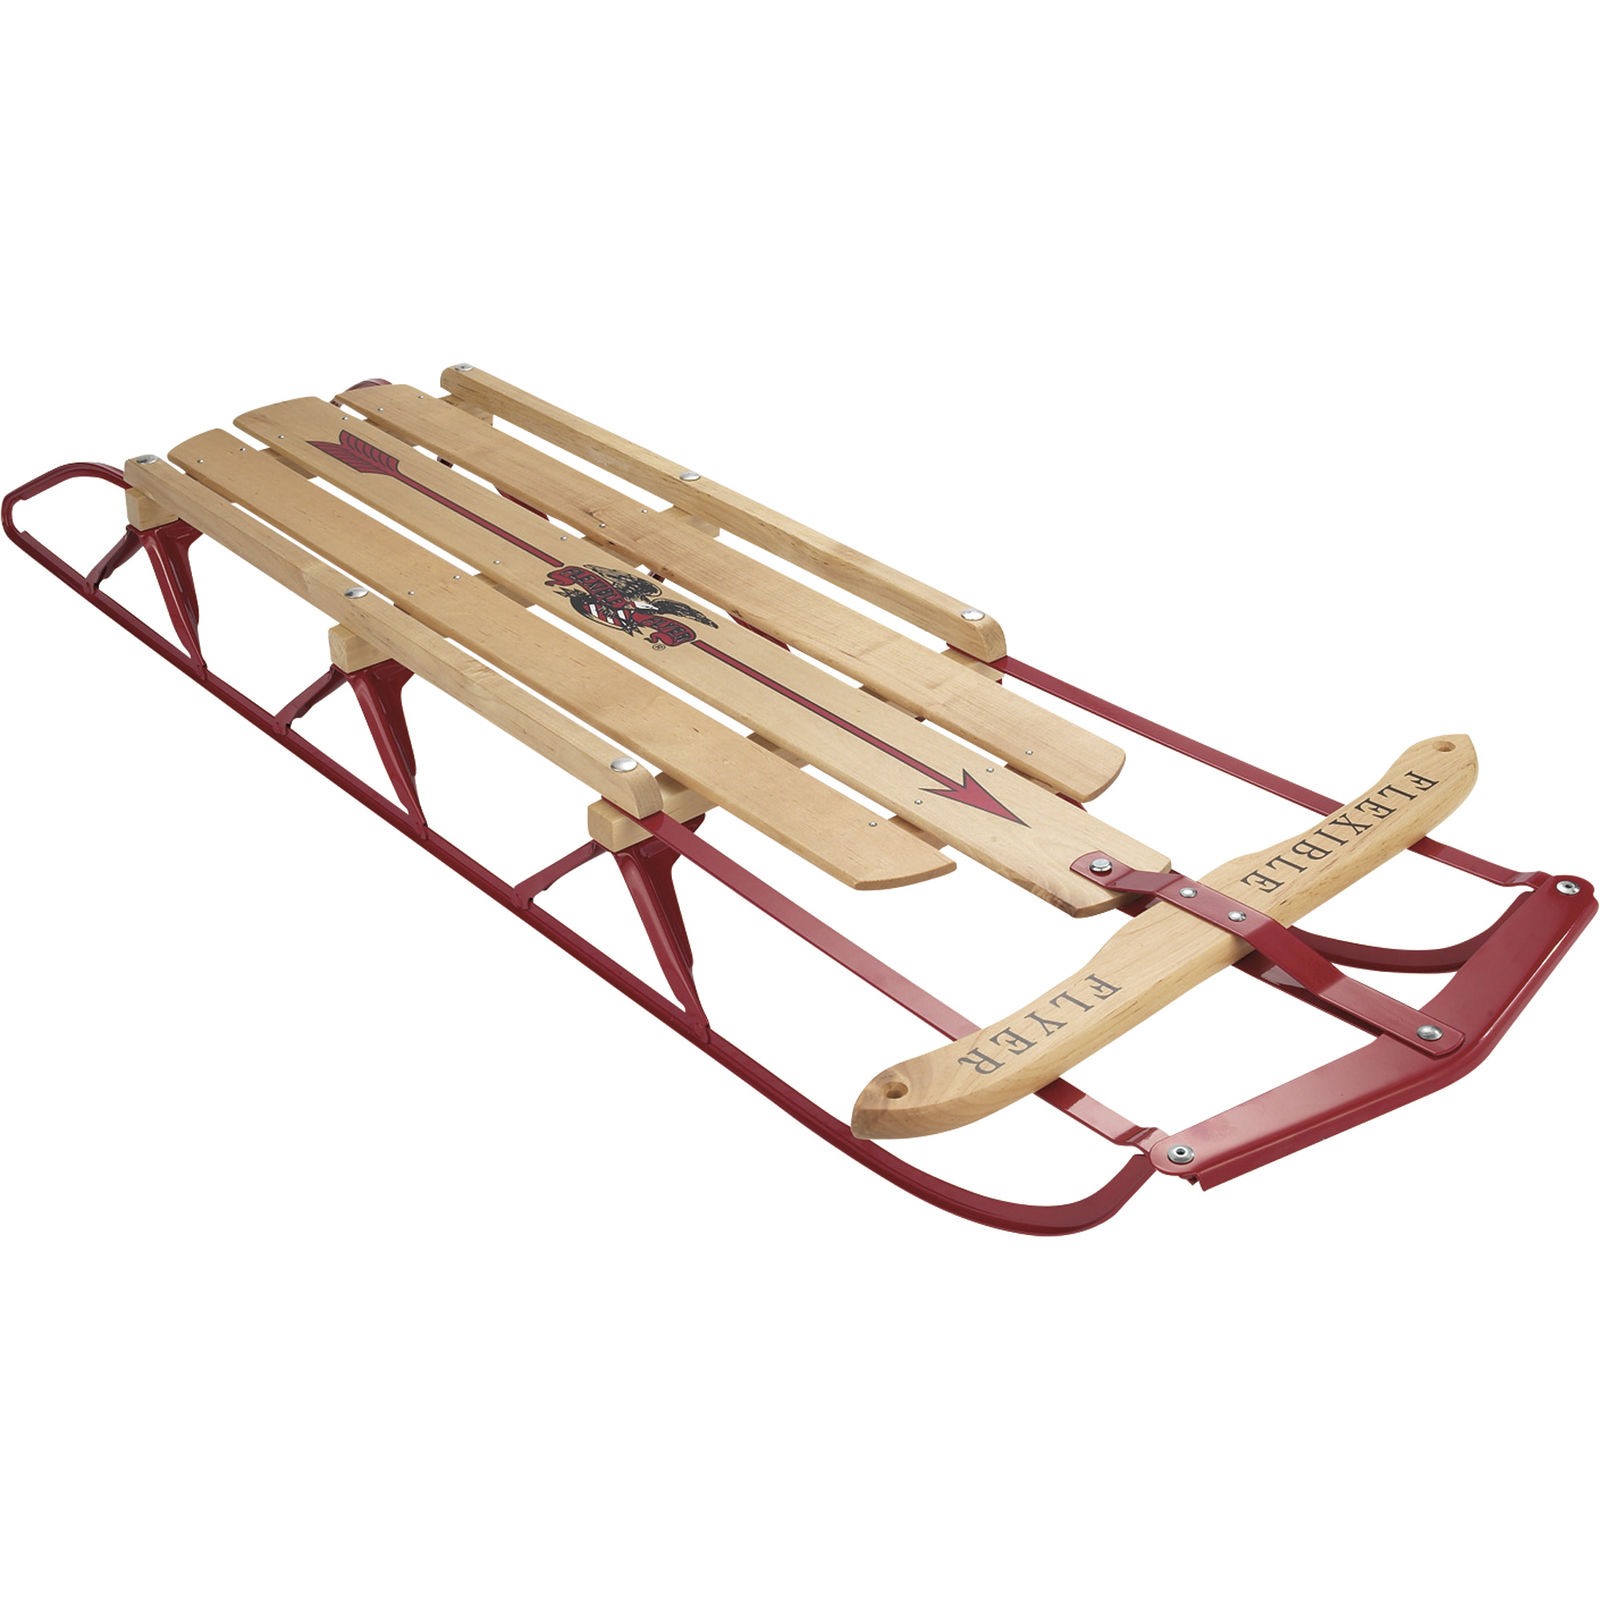 1600x1600 Paricon Flexible Flyer Steel Runner 54 Inch Sled Wood Ebay